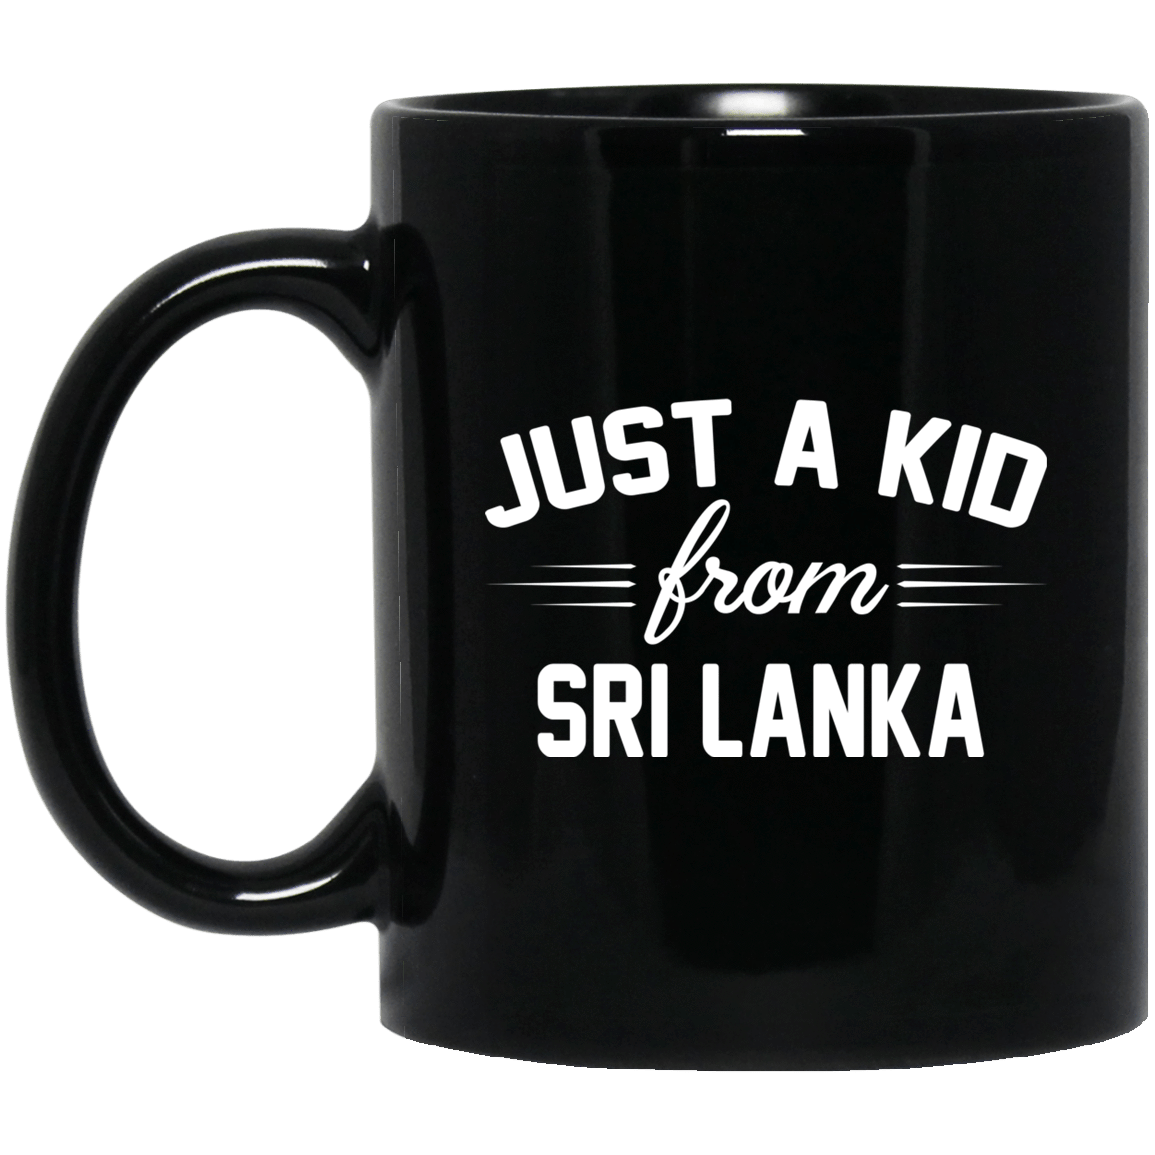 Just A Kid Store | Sri Lanka Mug 1065-10181-72111105-49307 - Tee Ript